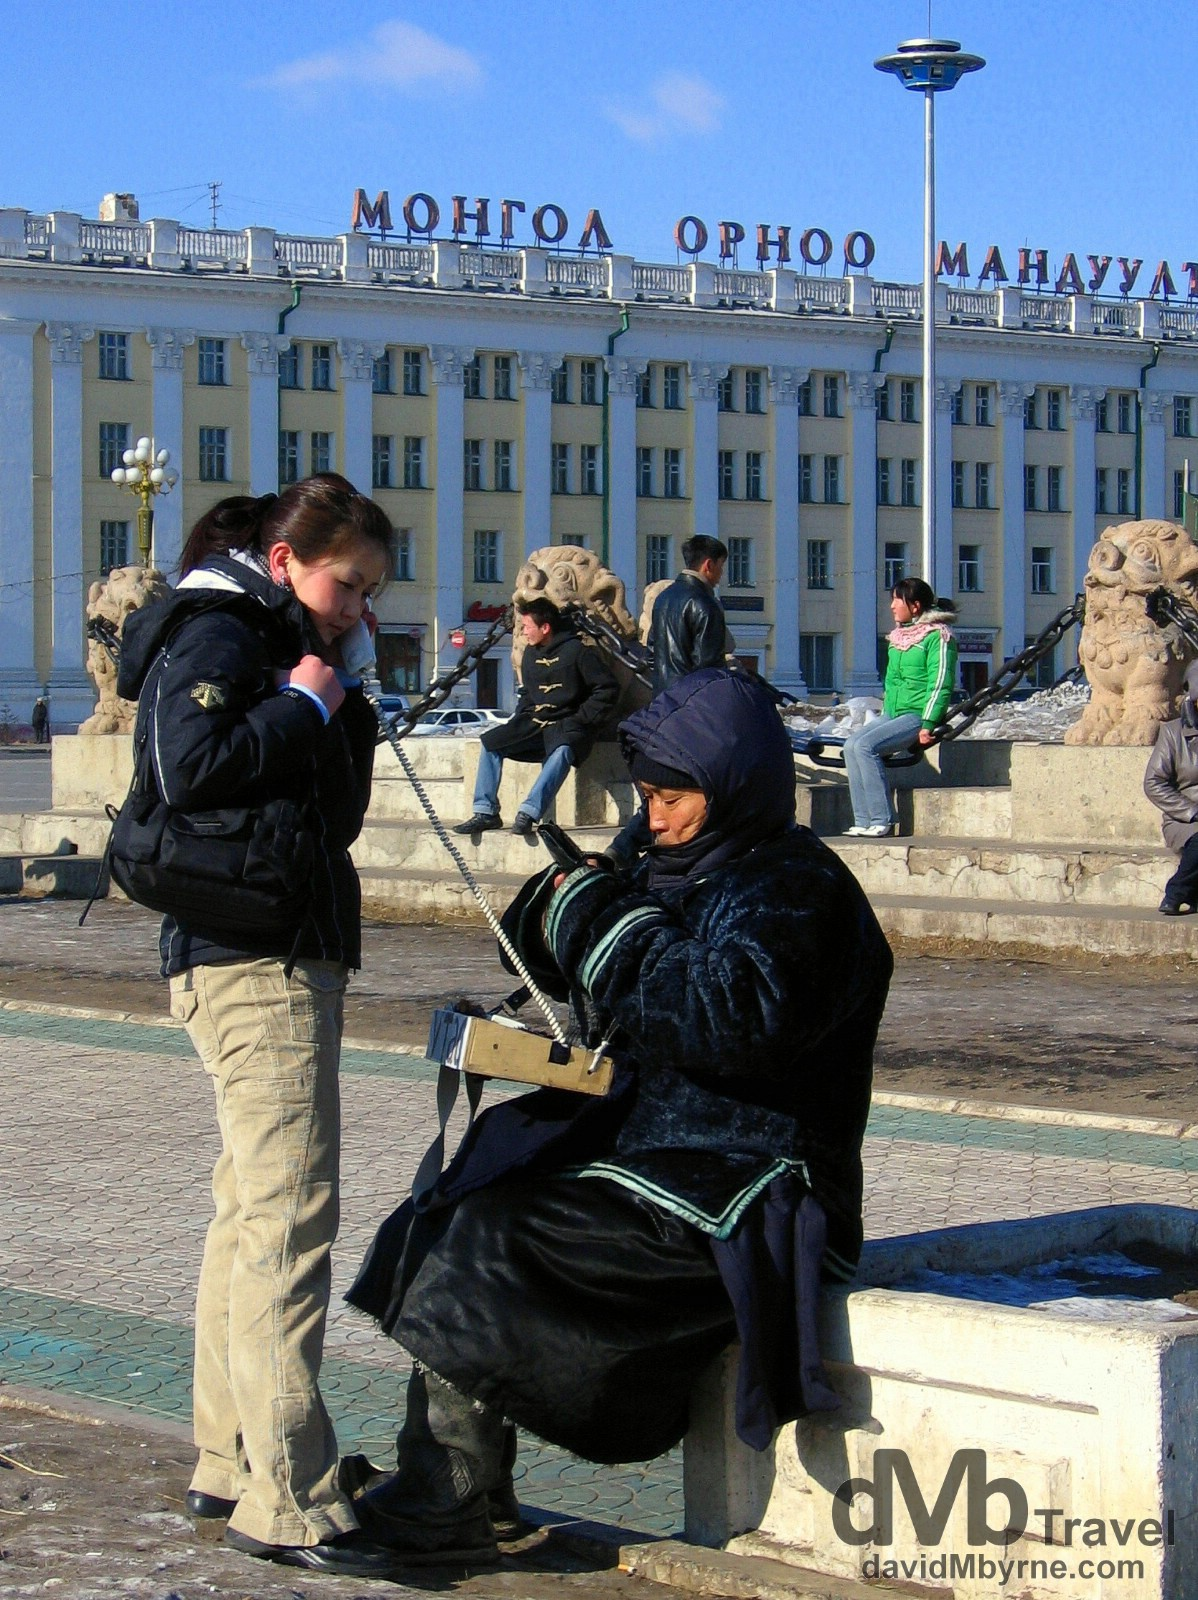 Connected in Sükhbaatar Square, Ulan Bator, Mongolia. February 16, 2006.